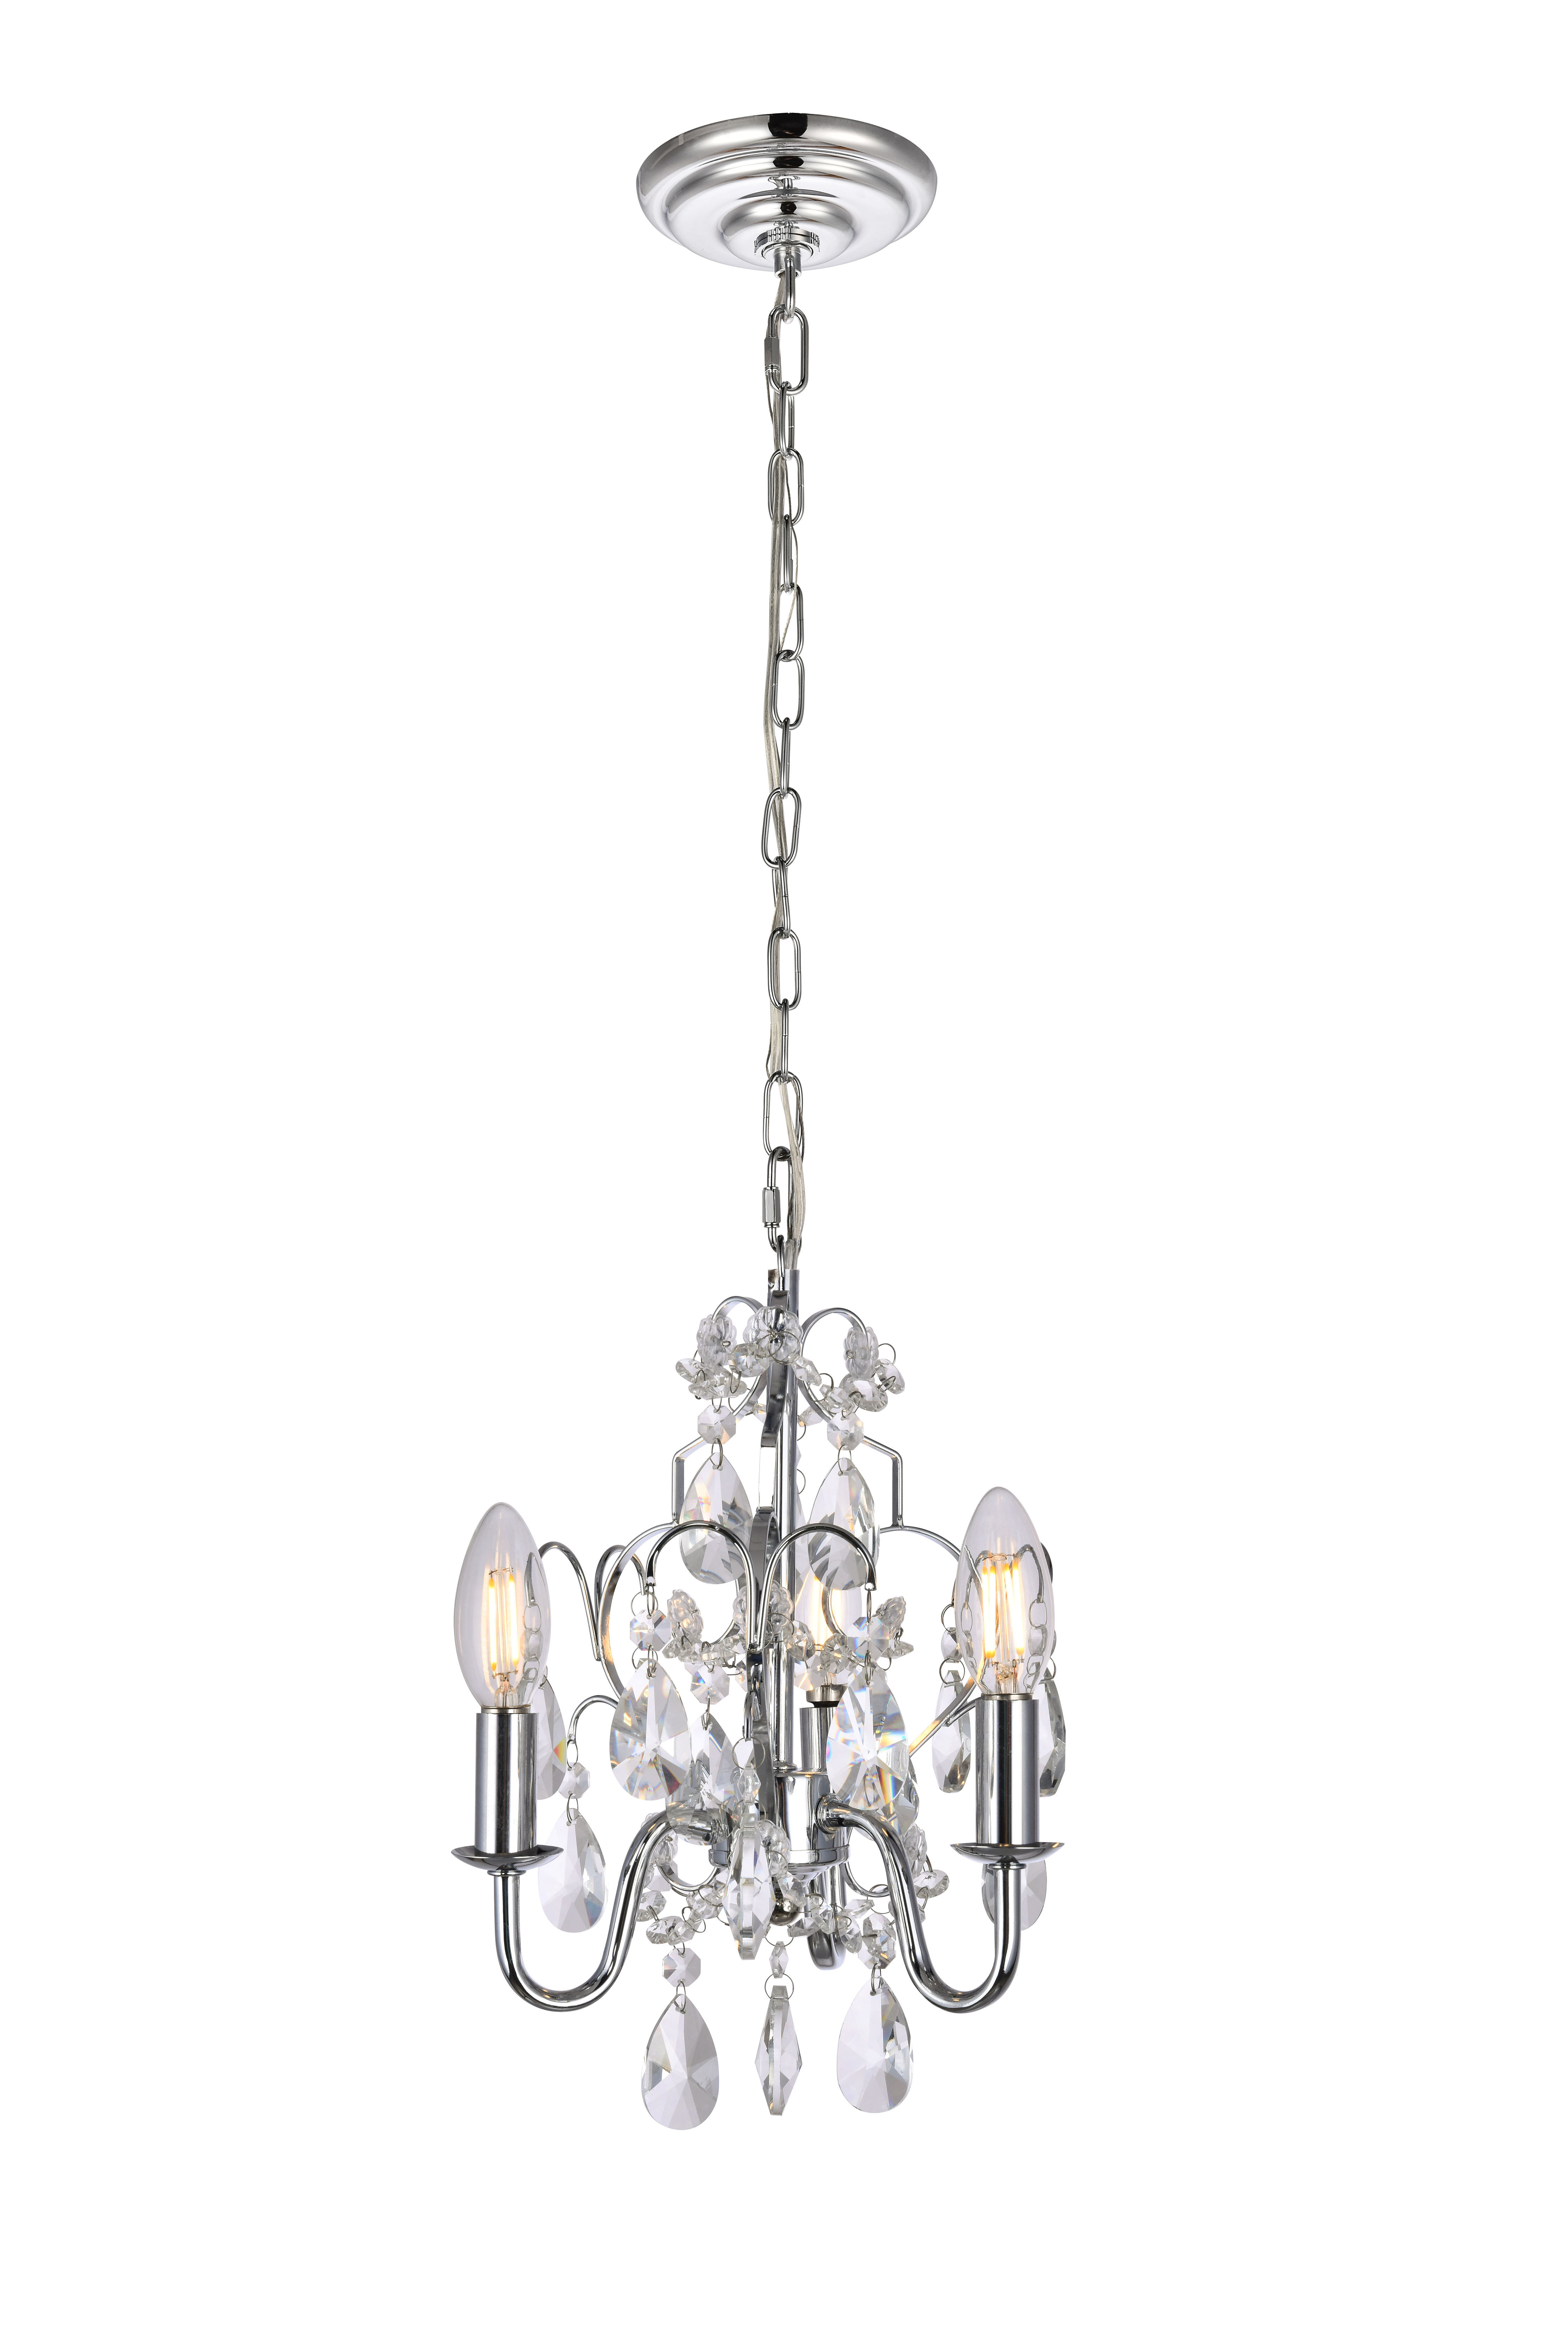 Dagnall 3 Light Candle Style Chandelier Pertaining To Aldora 4 Light Candle Style Chandeliers (View 14 of 30)